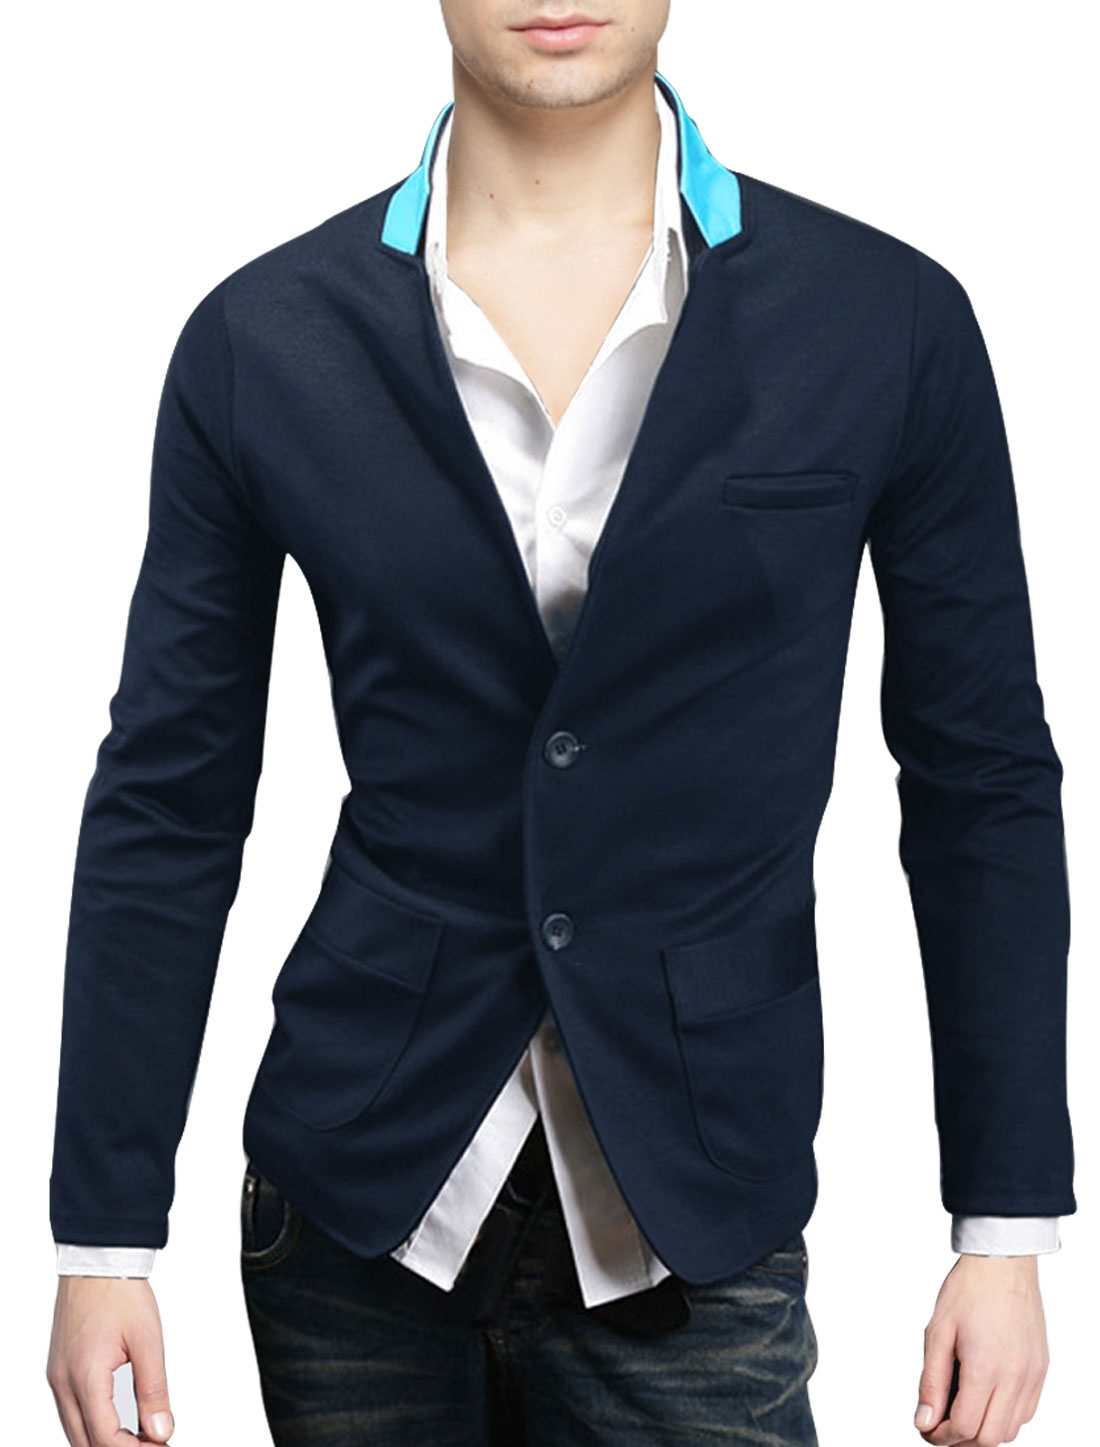 Men Chic Dark Blue Color Single-Breasted Front Casual Blazer Jacket S